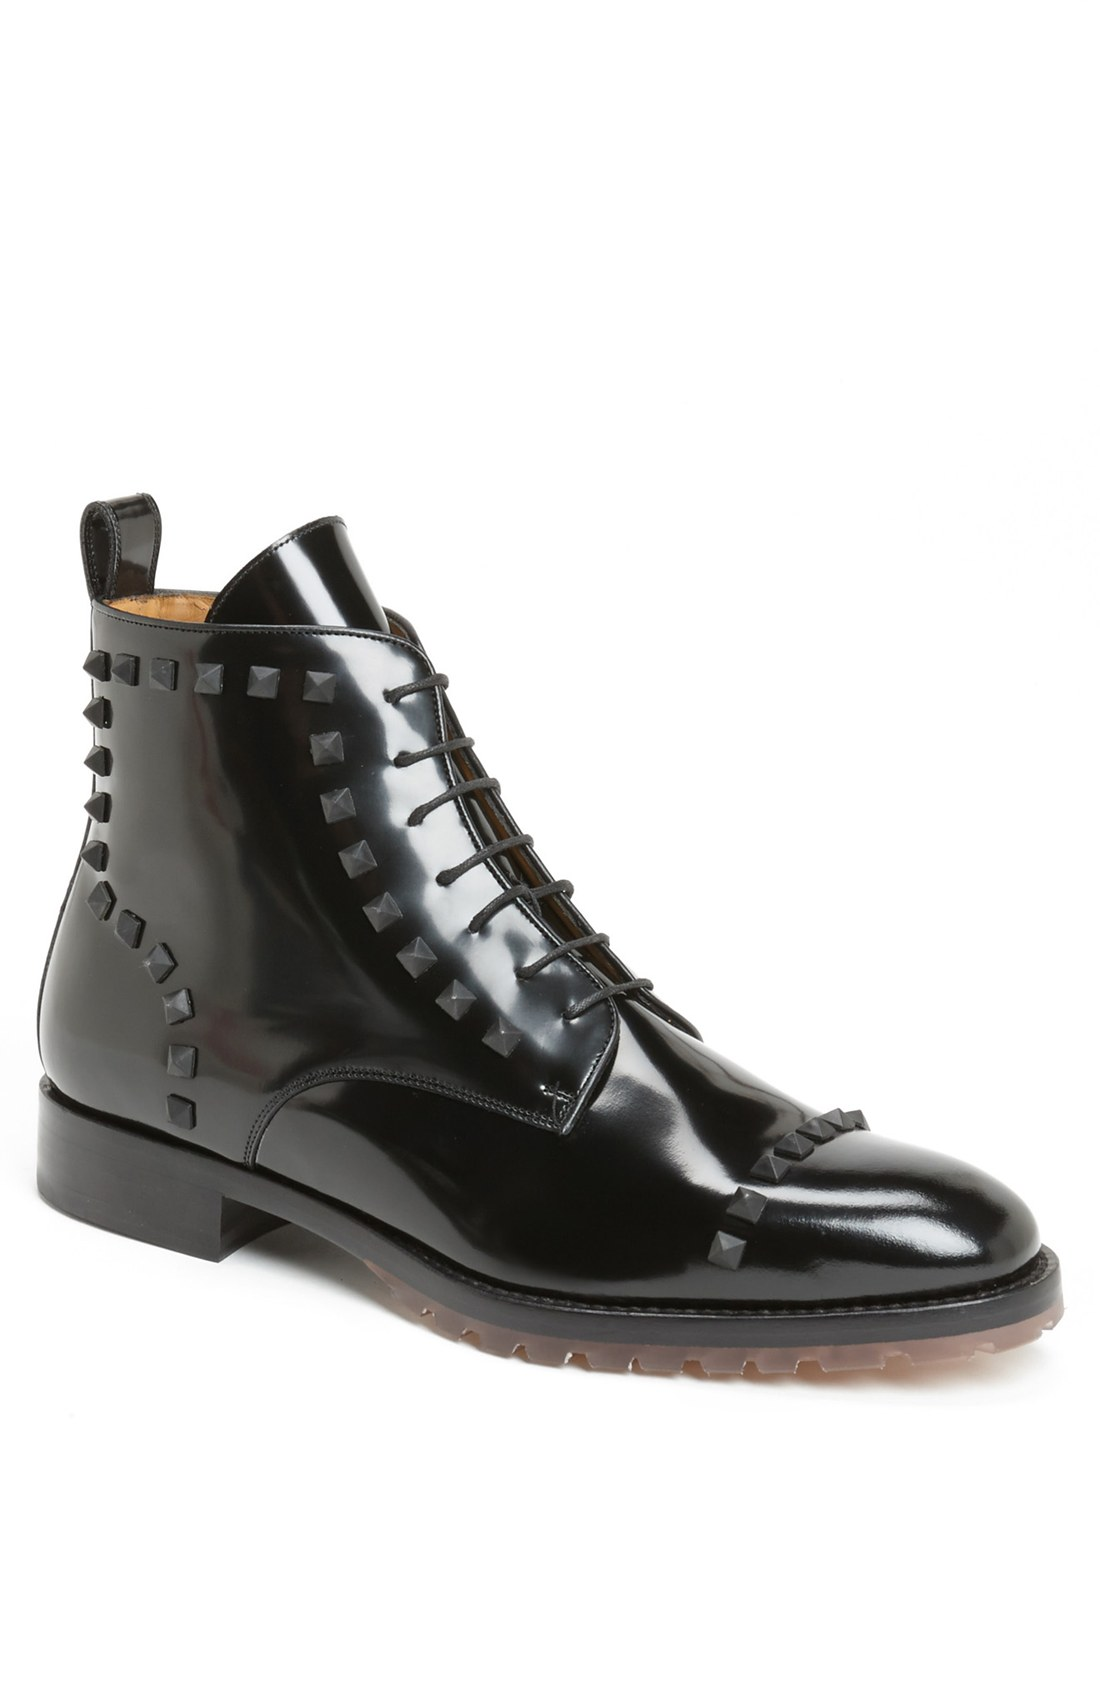 valentino studded leather boot in black for lyst